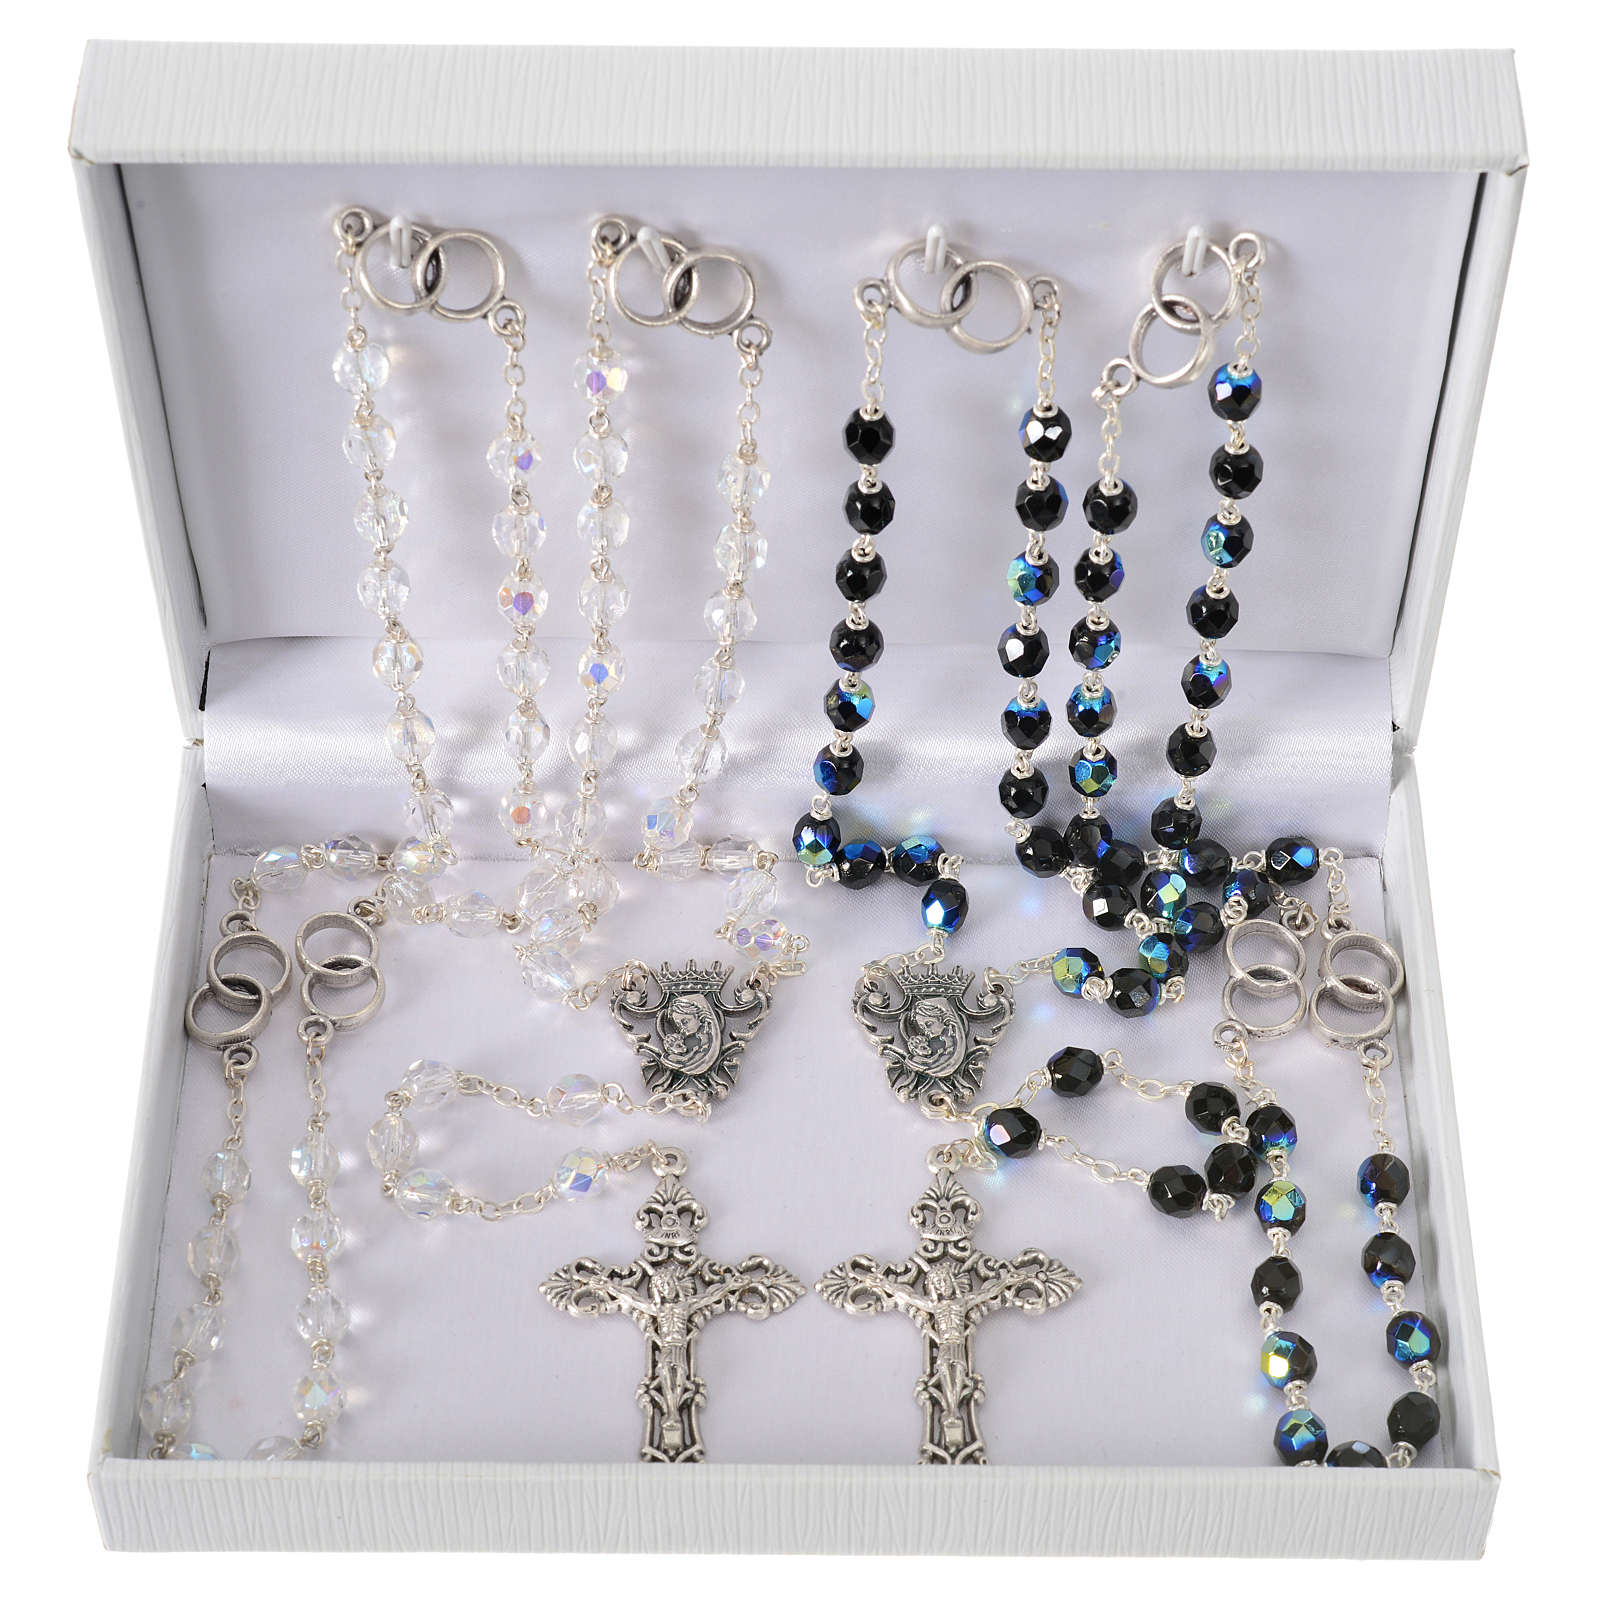 Wedding rosary beads, glass grains 7mm 4